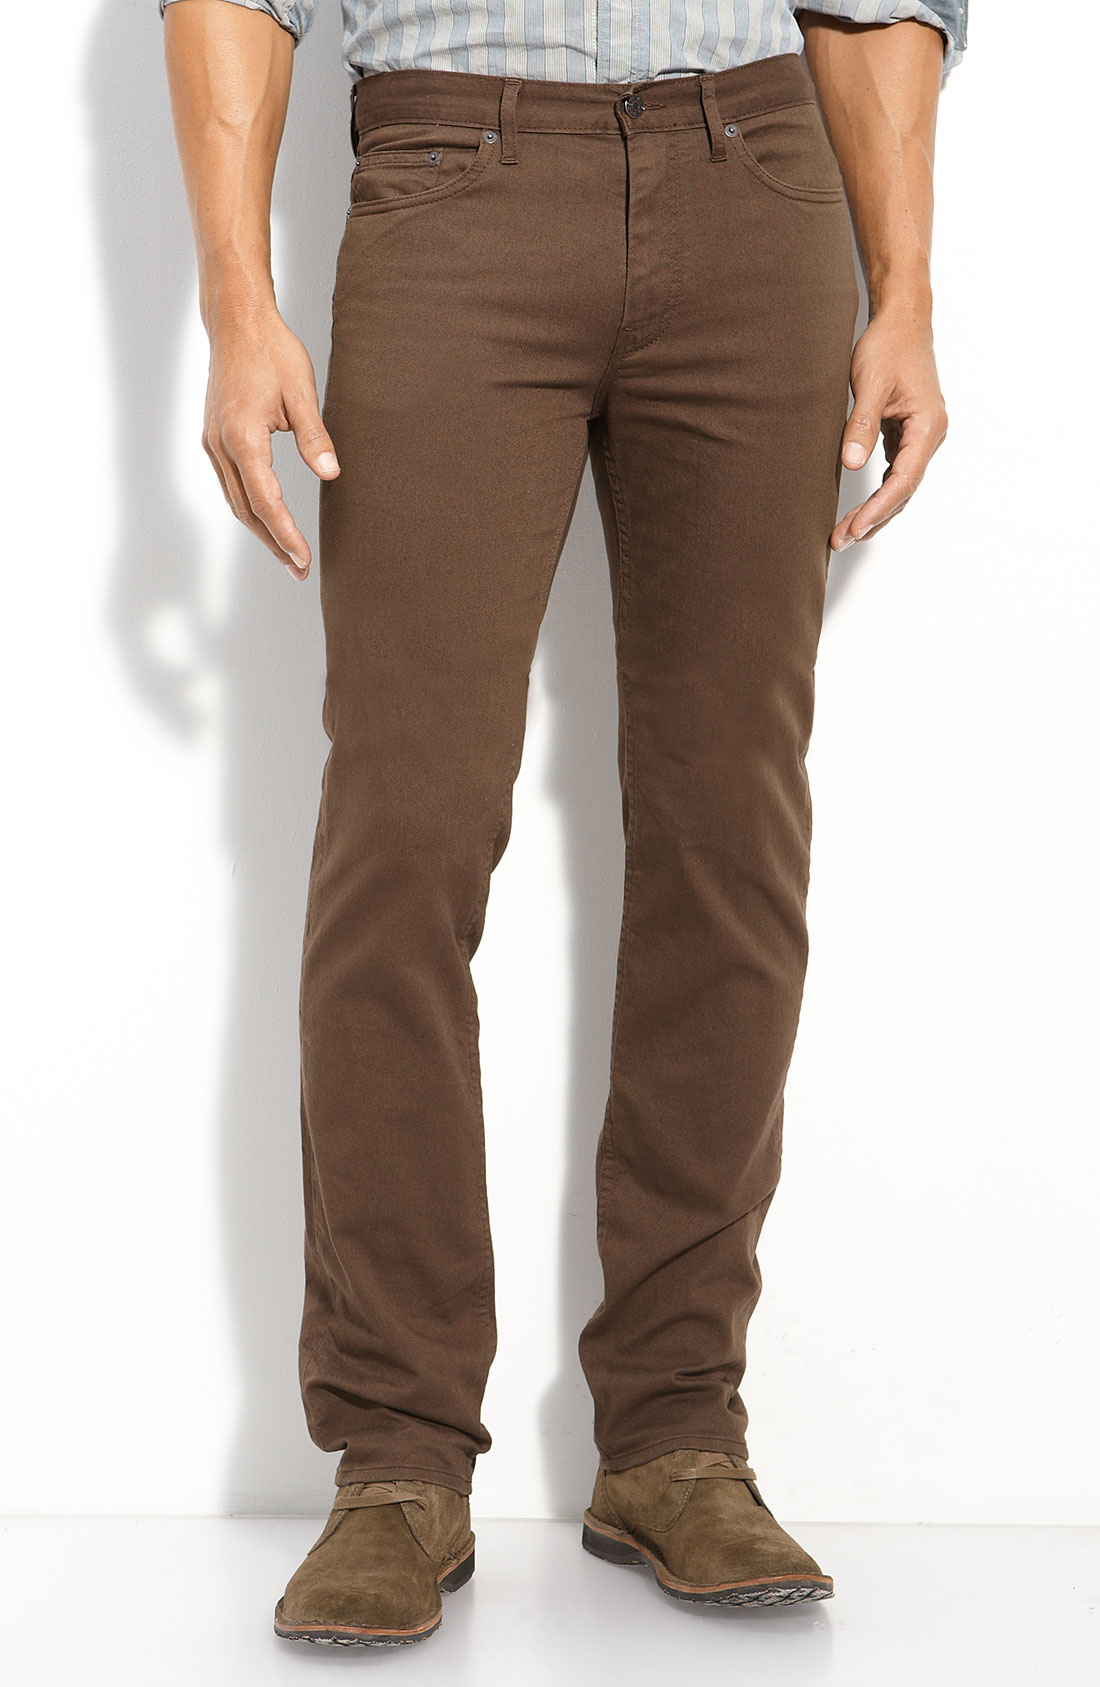 Marc by marc jacobs Slim Fit Twill Pants in Brown for Men | Lyst